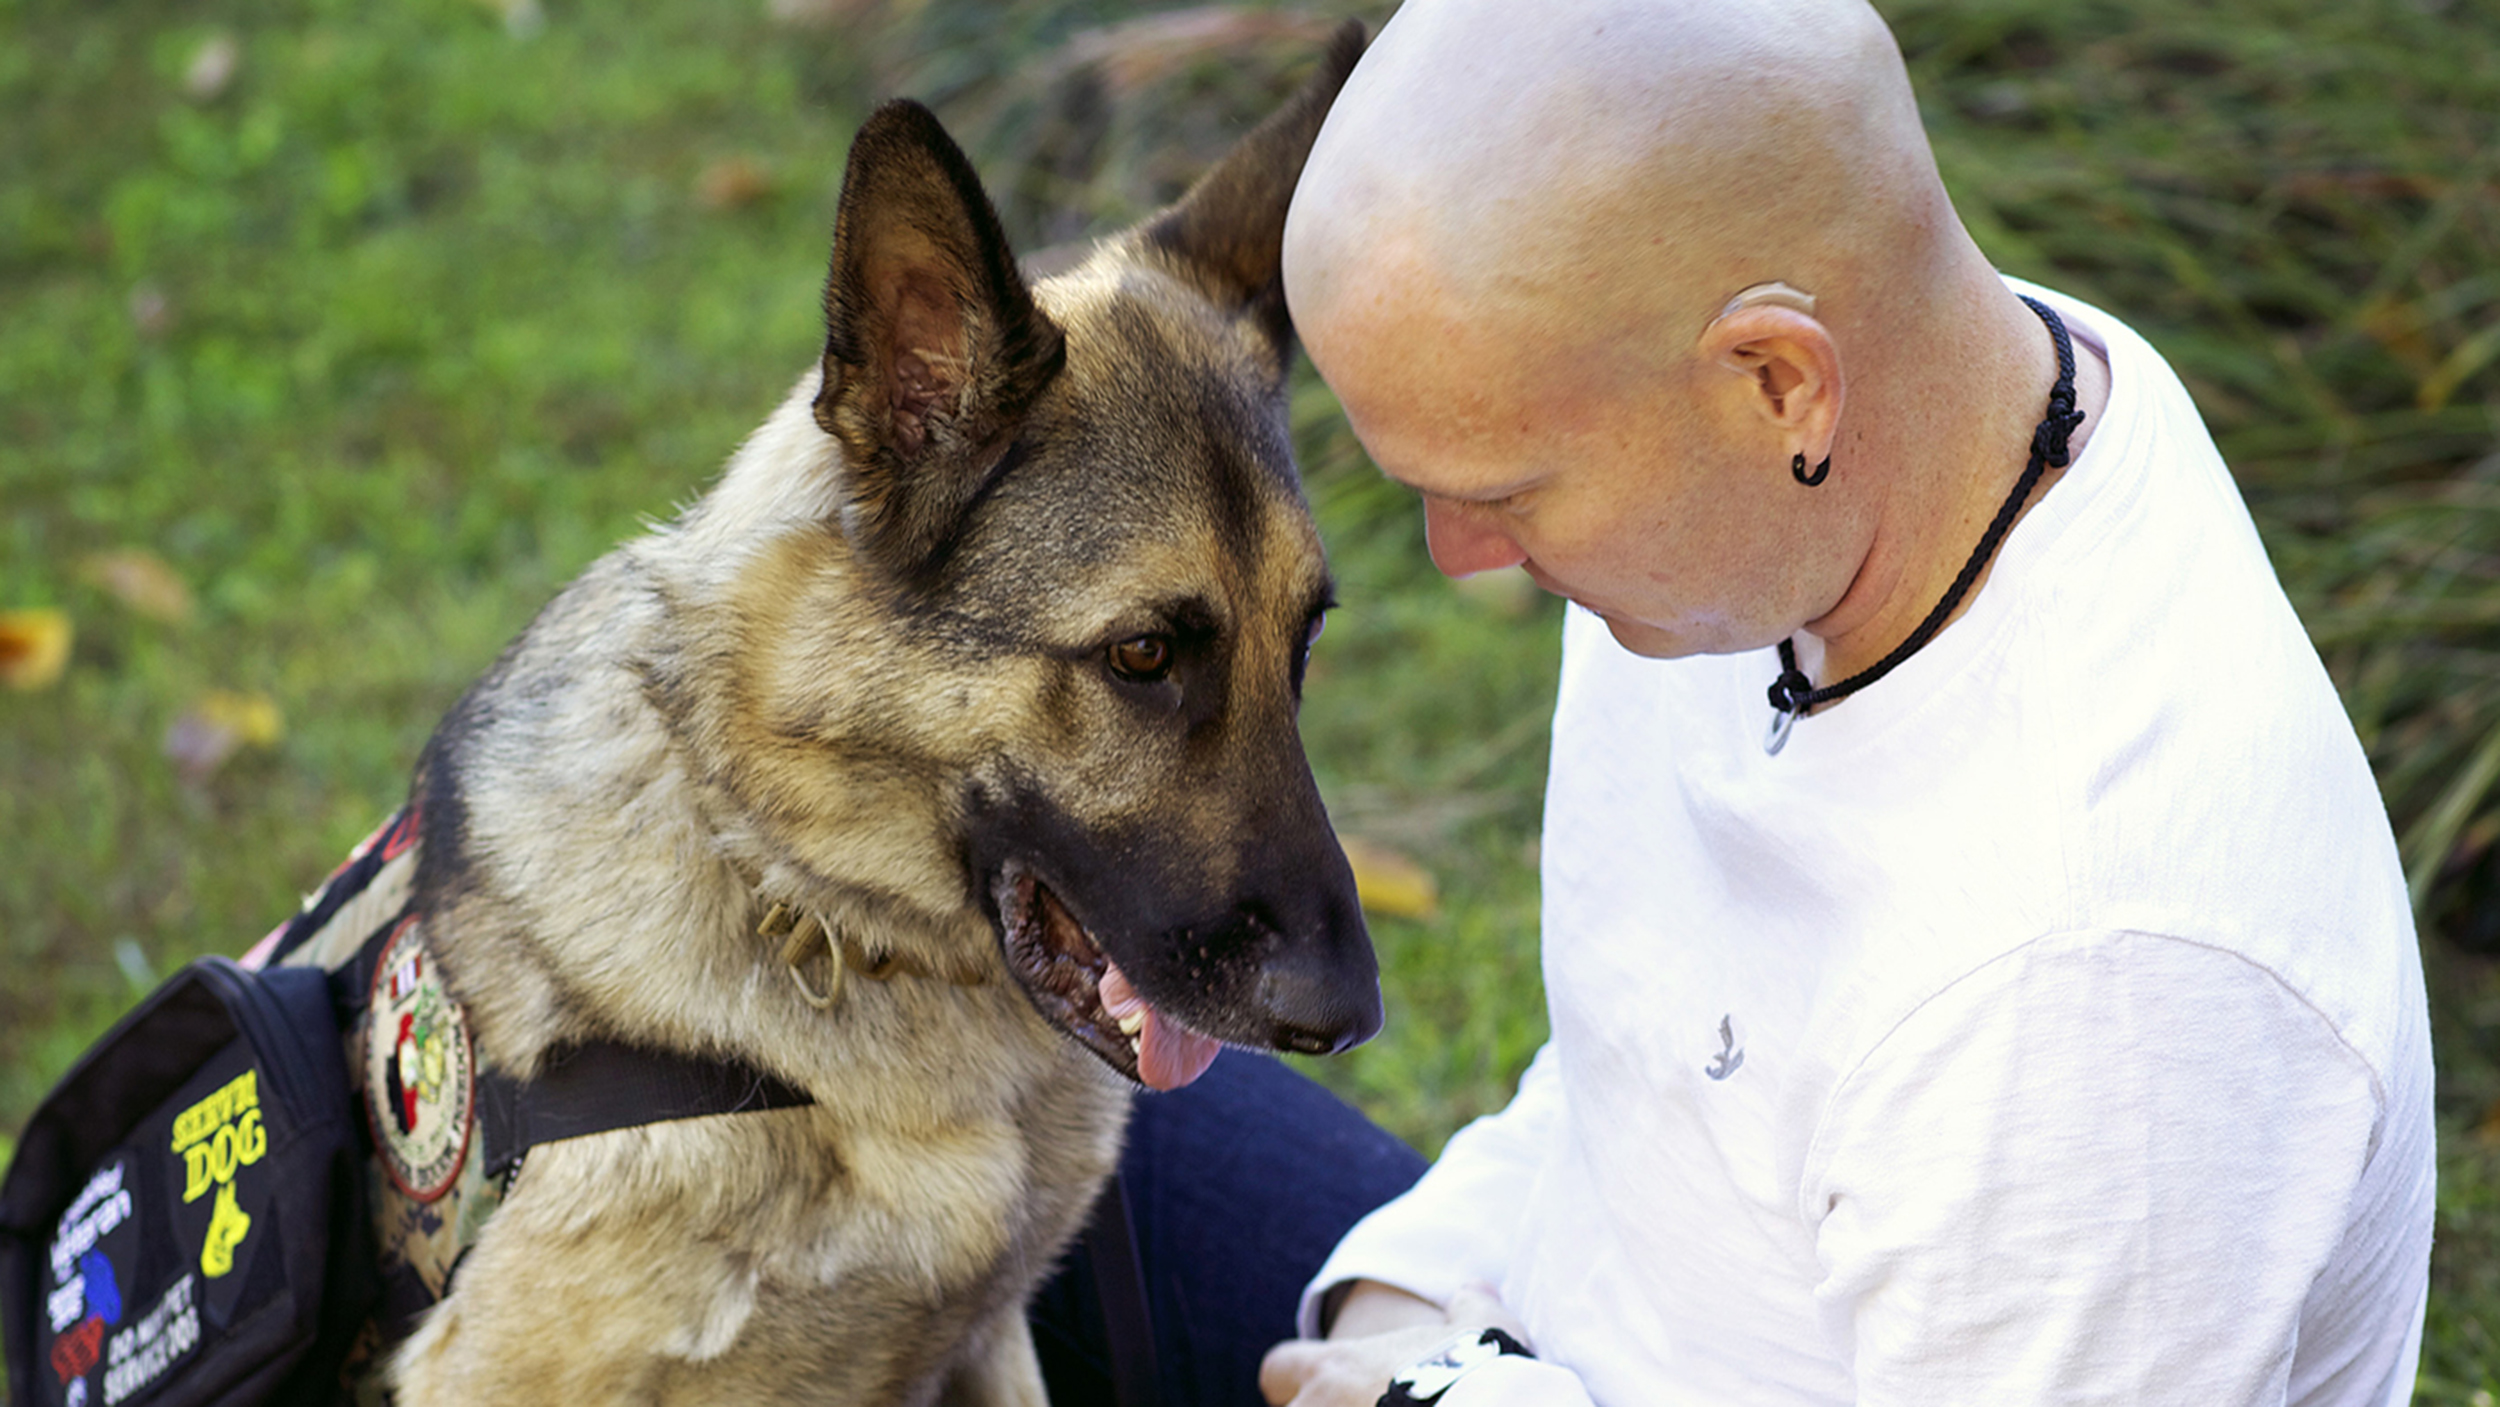 service dogs much more than a helpers However, the actuality of such a step is far more complex and much harder than it appears at first glance obviously each child presents a separate set of challenges, as does each family situation, dog, disability, etc.